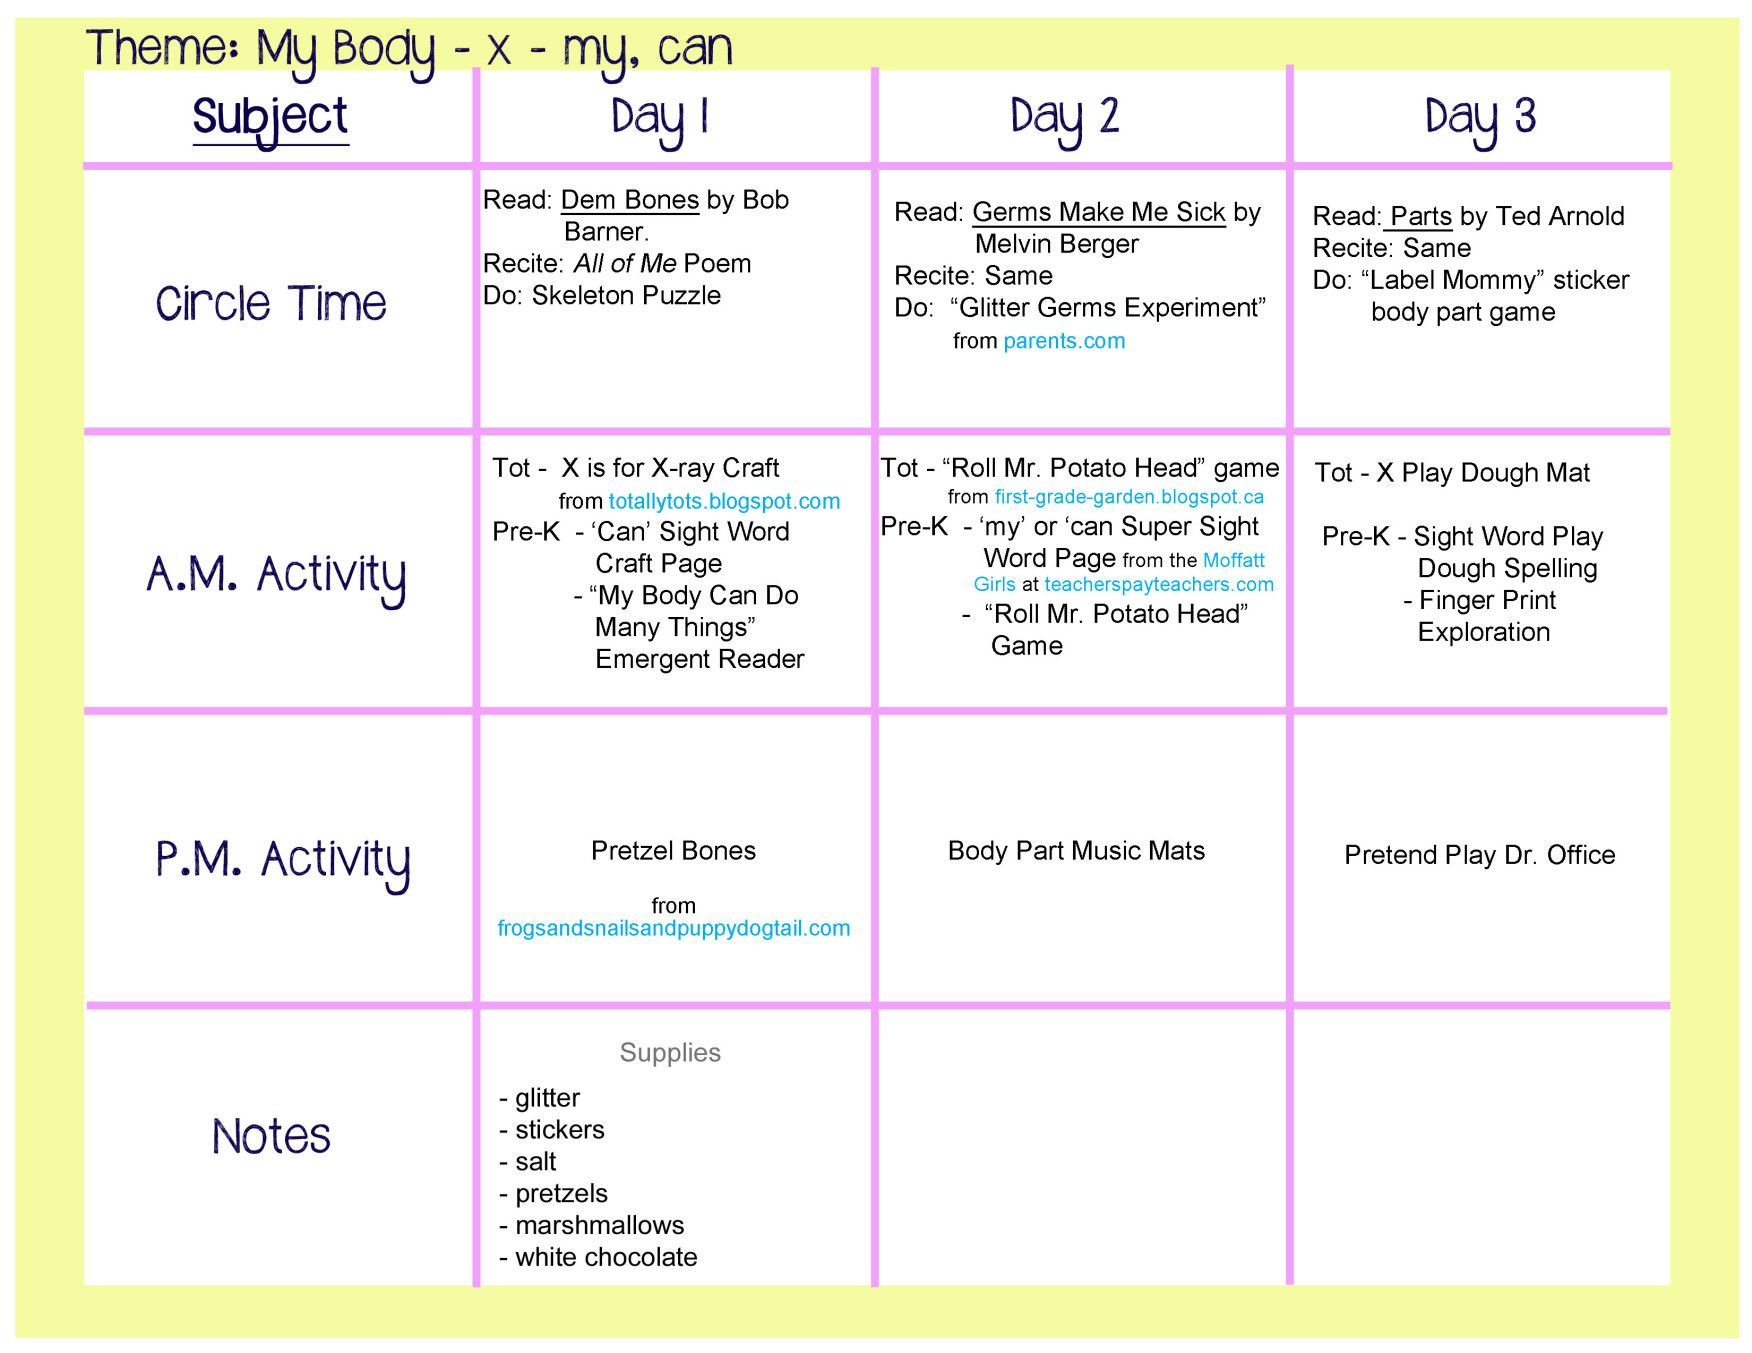 My Body Lesson Plan : All About Me Crafts and Learning Activities ...